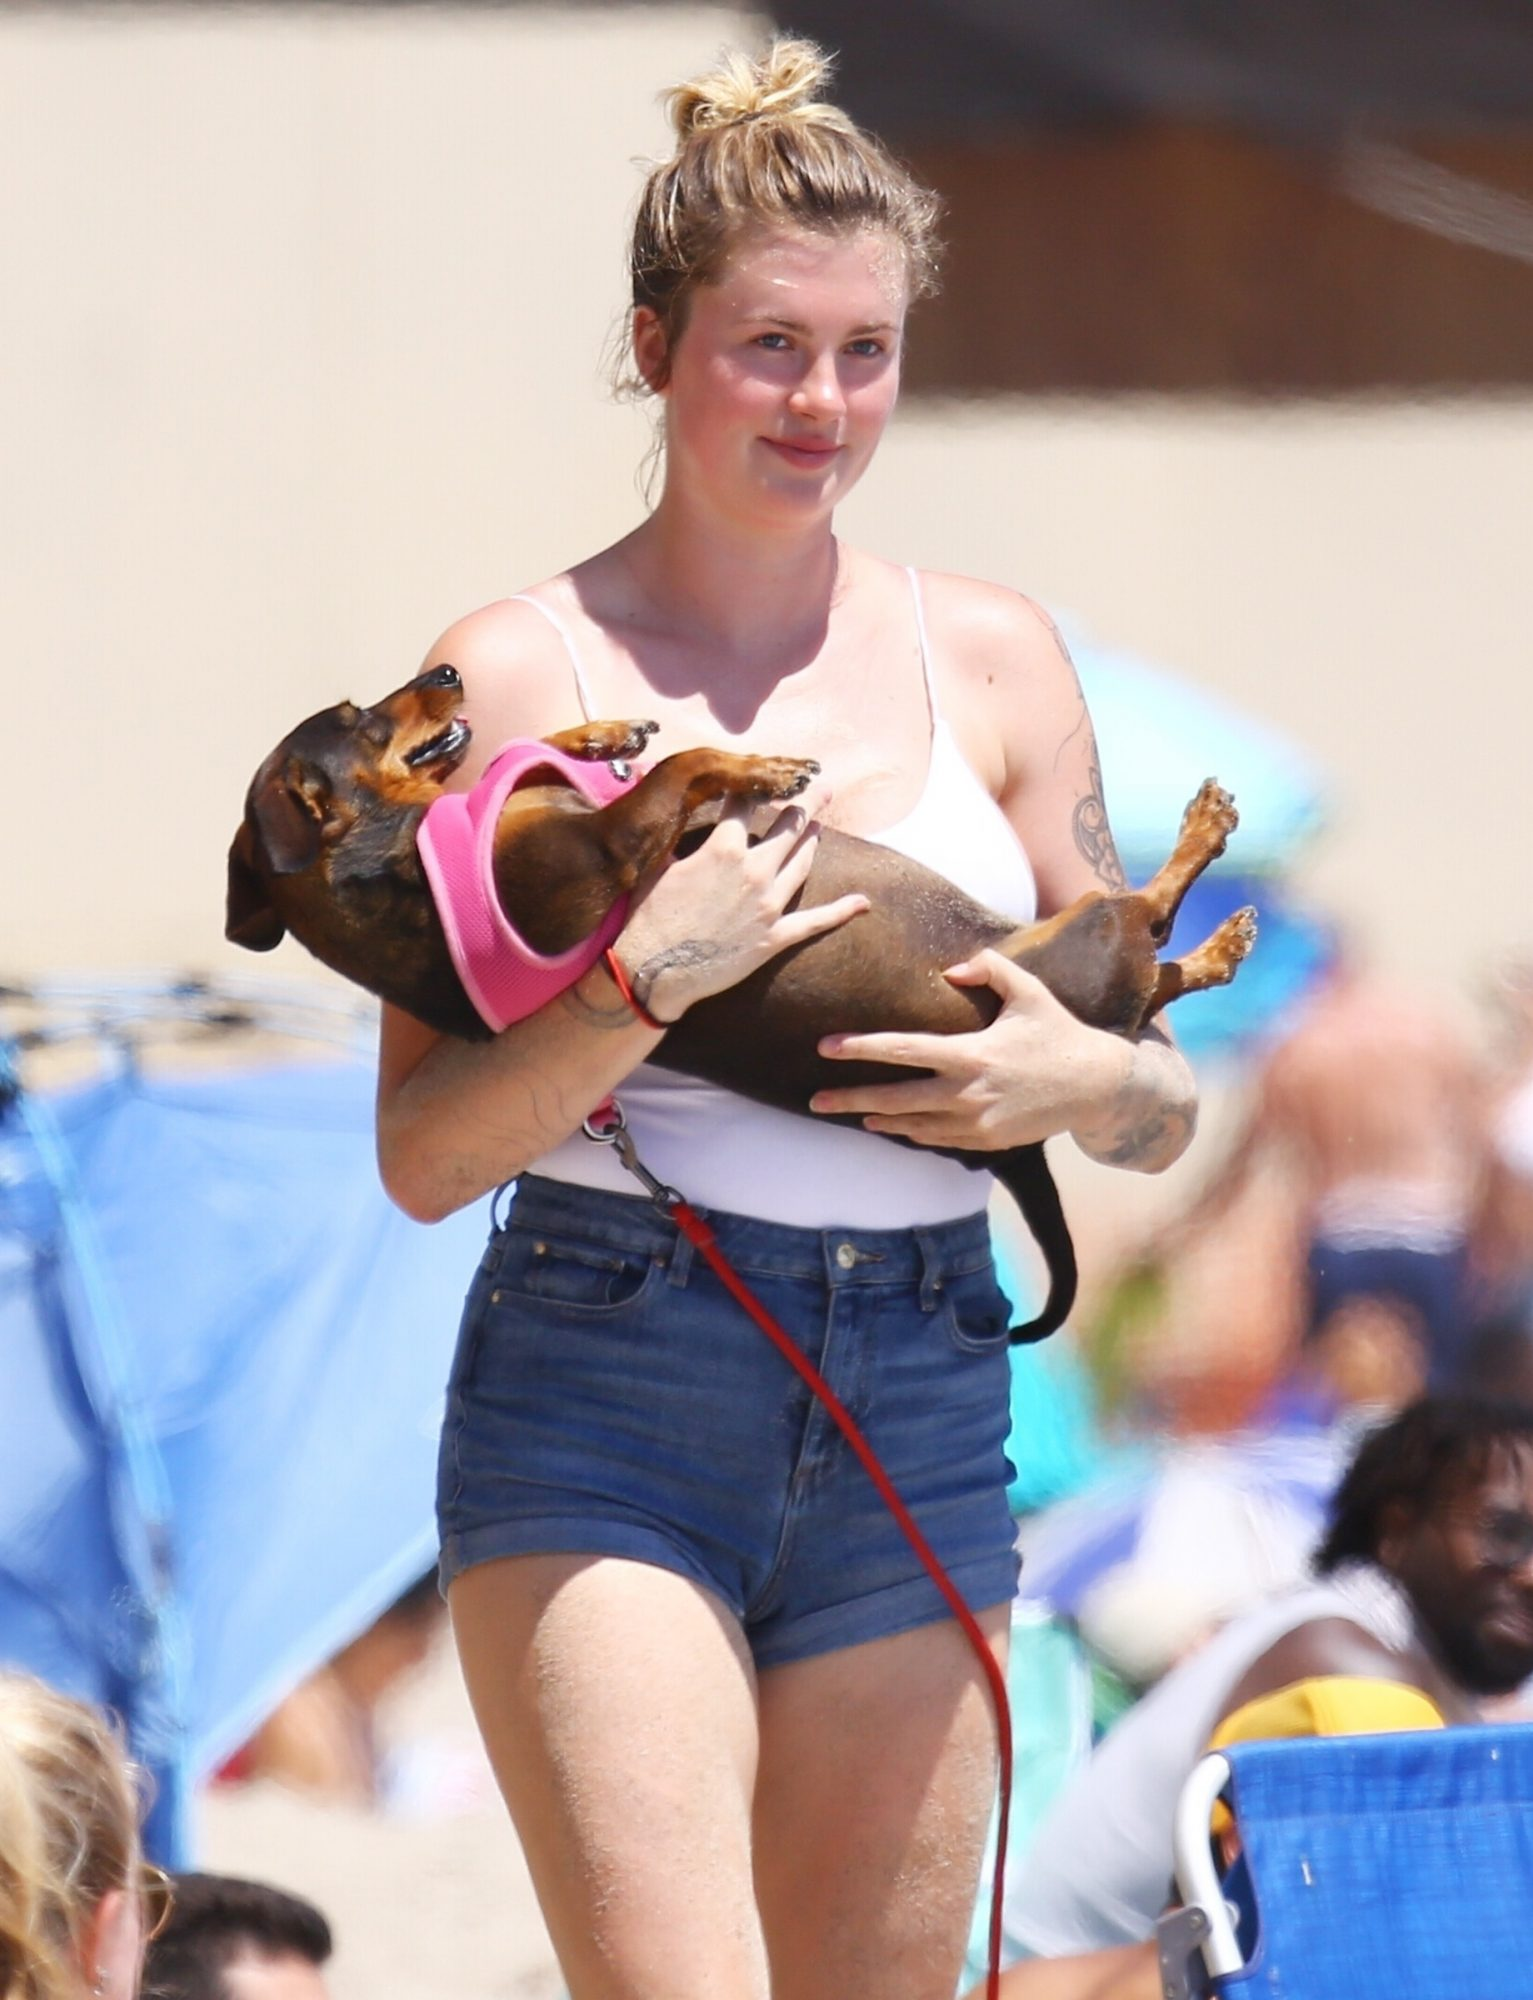 Ireland Baldwin is all smiles while out having a fun day at the beach with her friends.